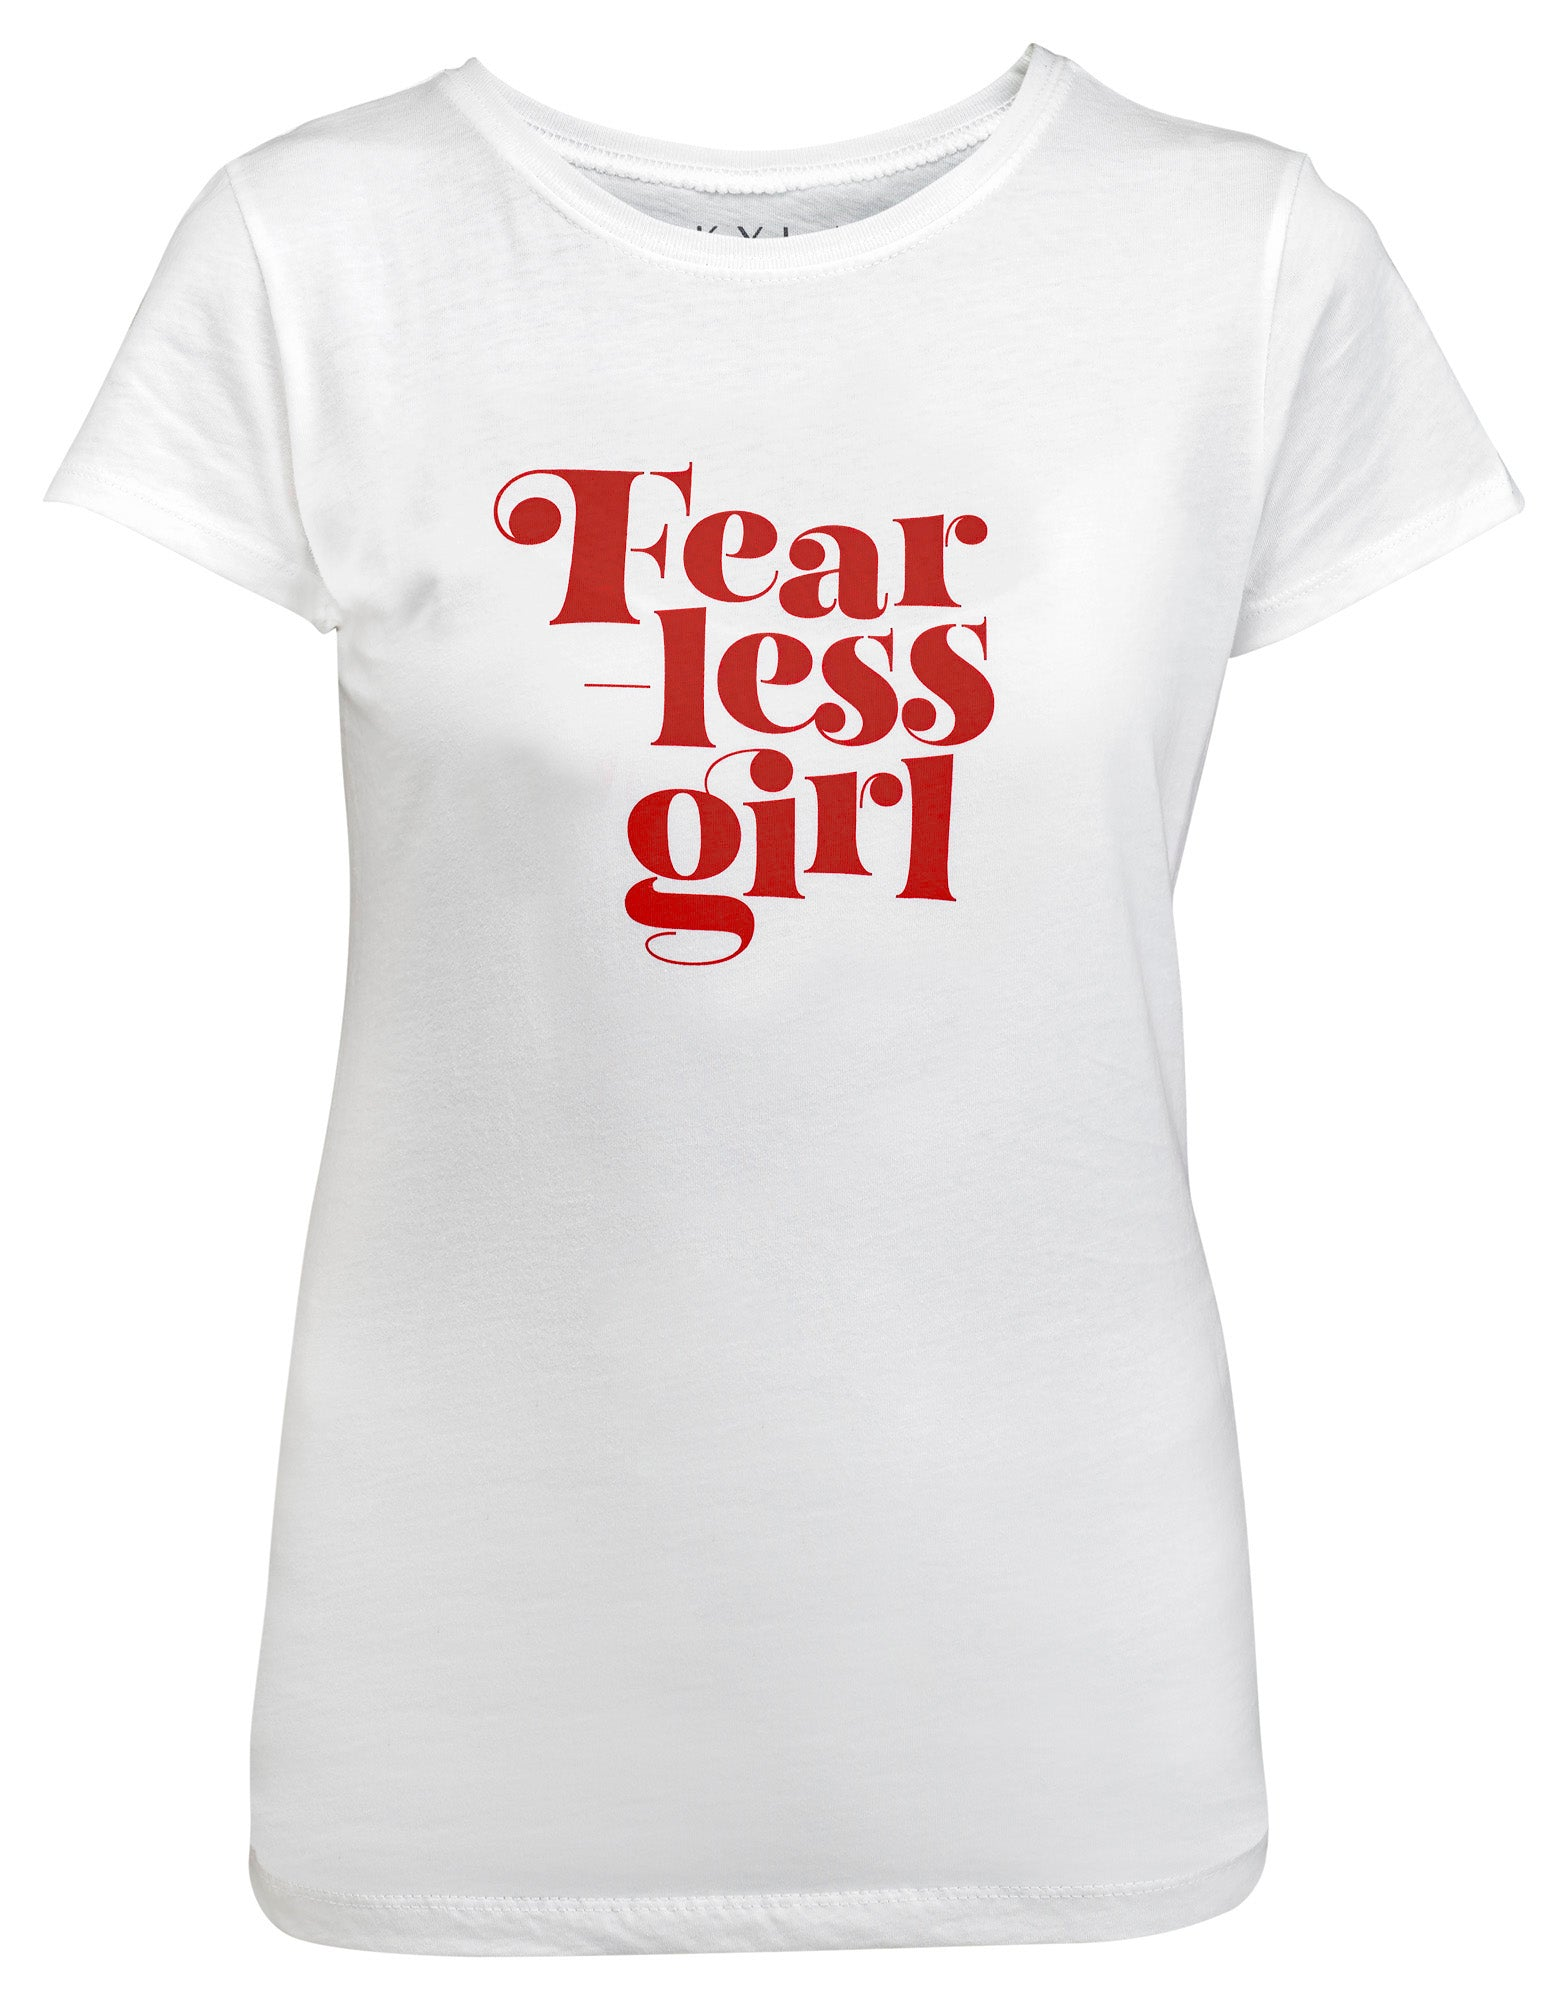 Fearless Girl Youth Graphic Tee - White